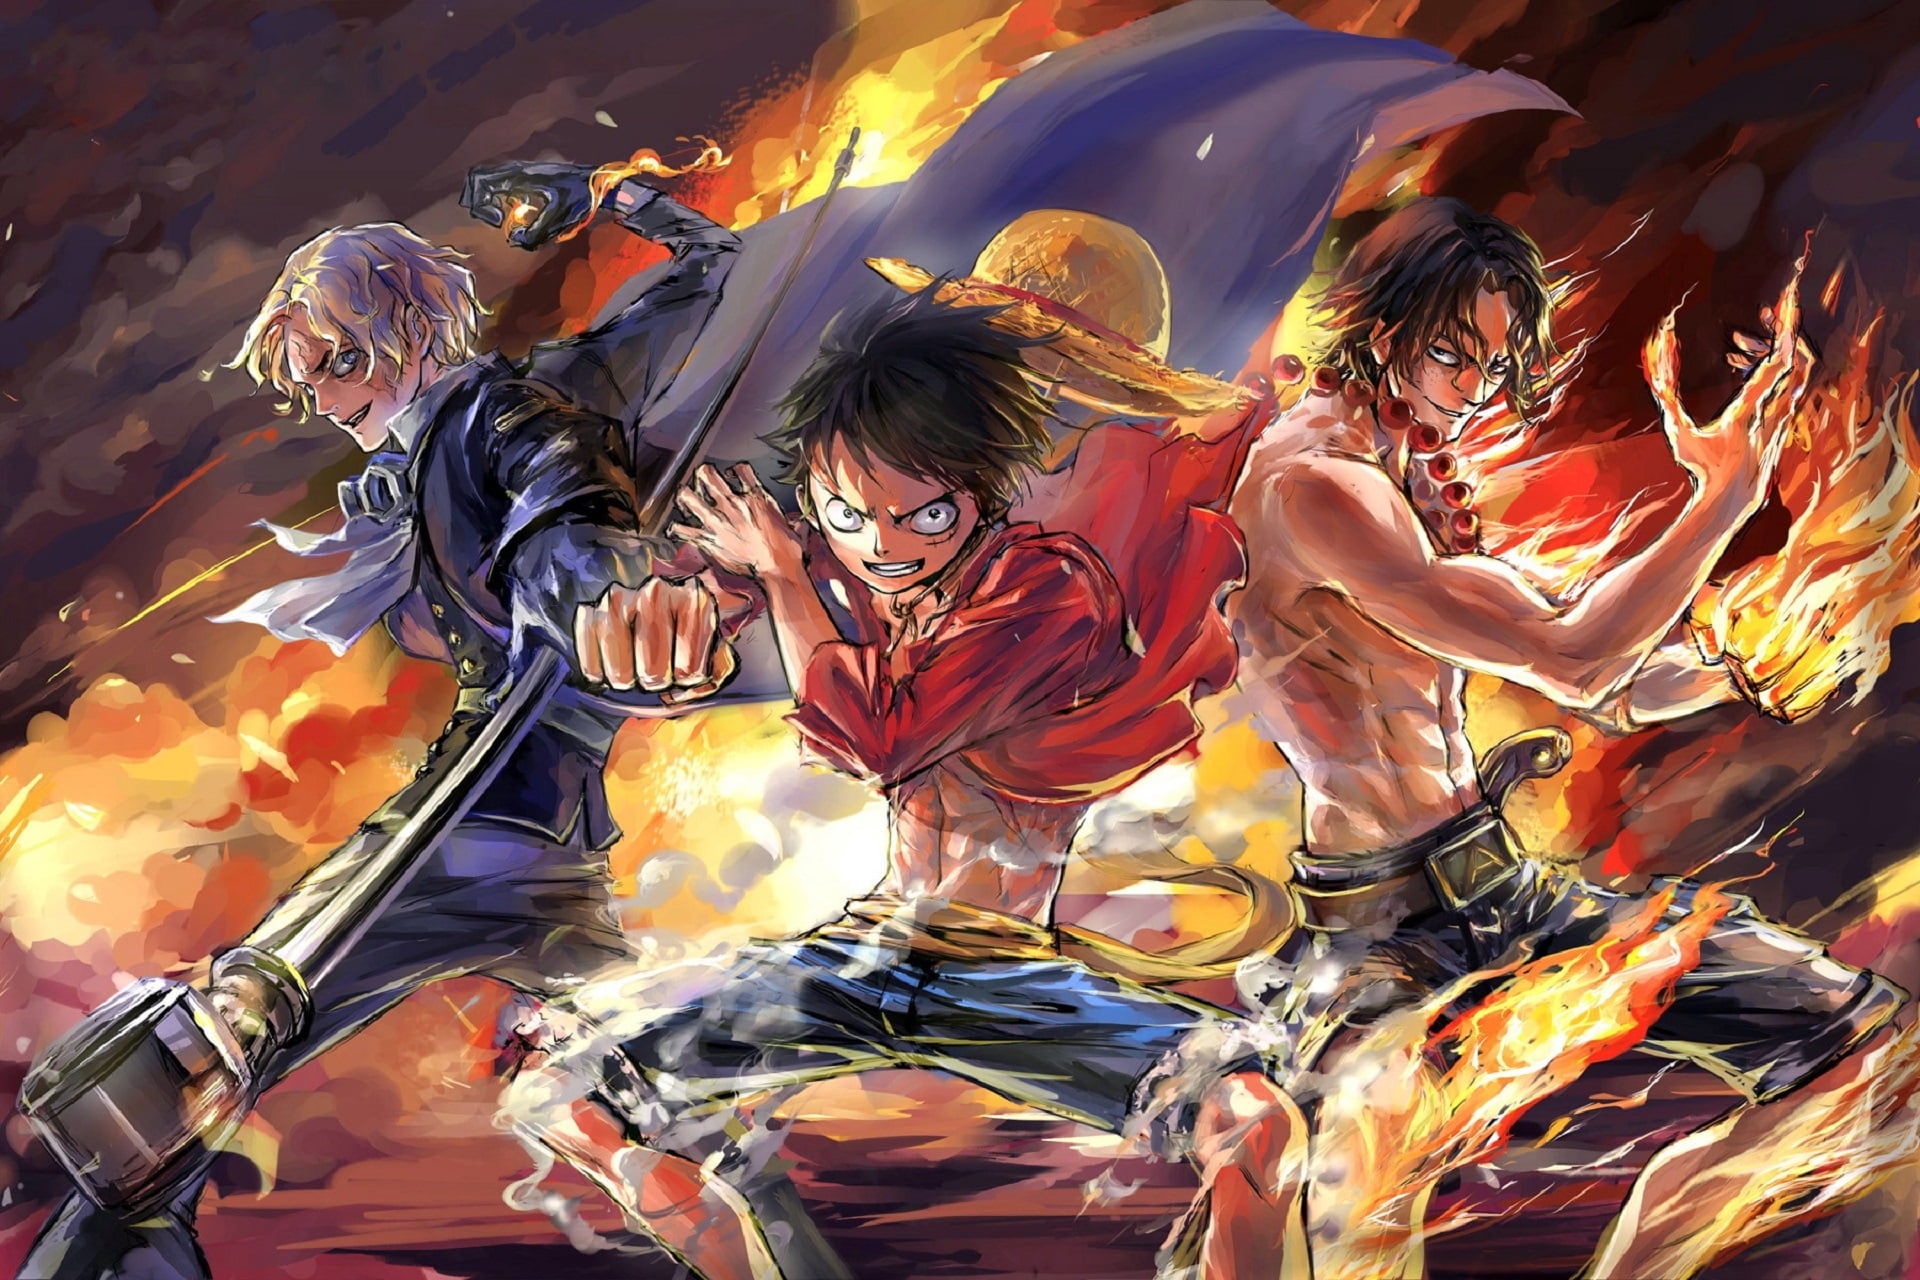 Luffy, Ace and Sabo One Piece Team Wallpaper, HD Anime 4K ...